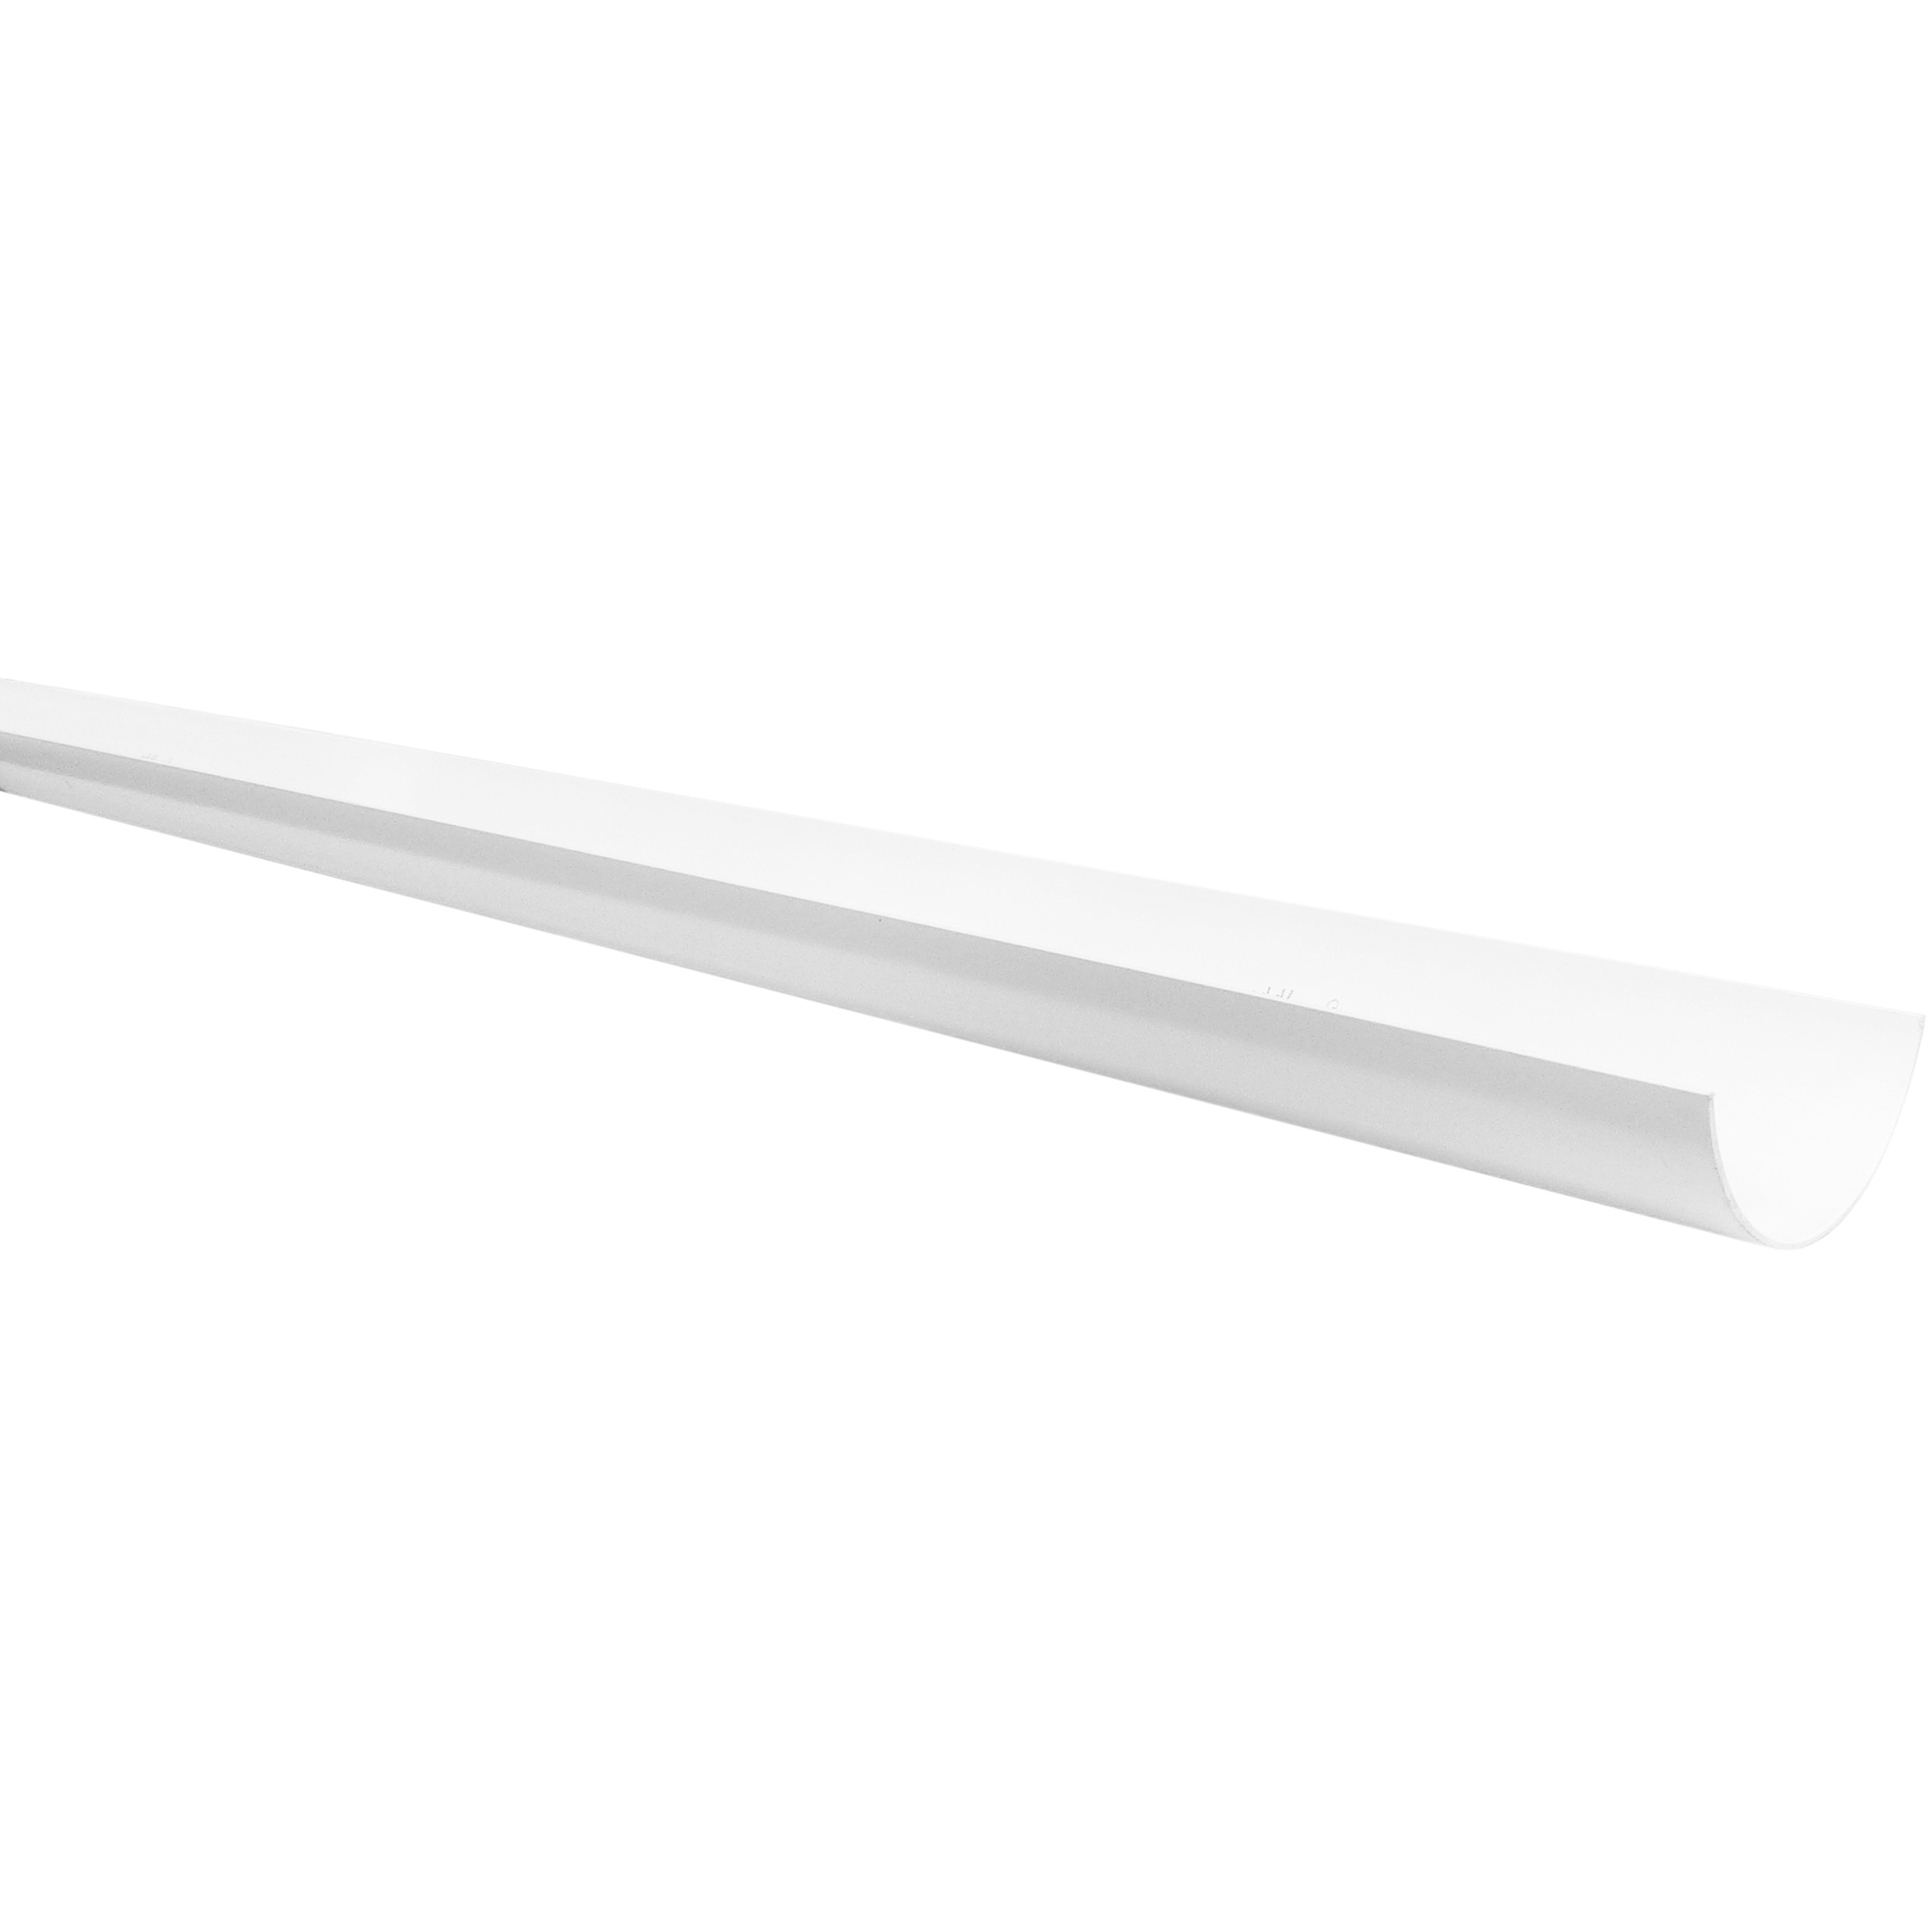 Polypipe 112mm Half Round Gutter - White, 4 metre